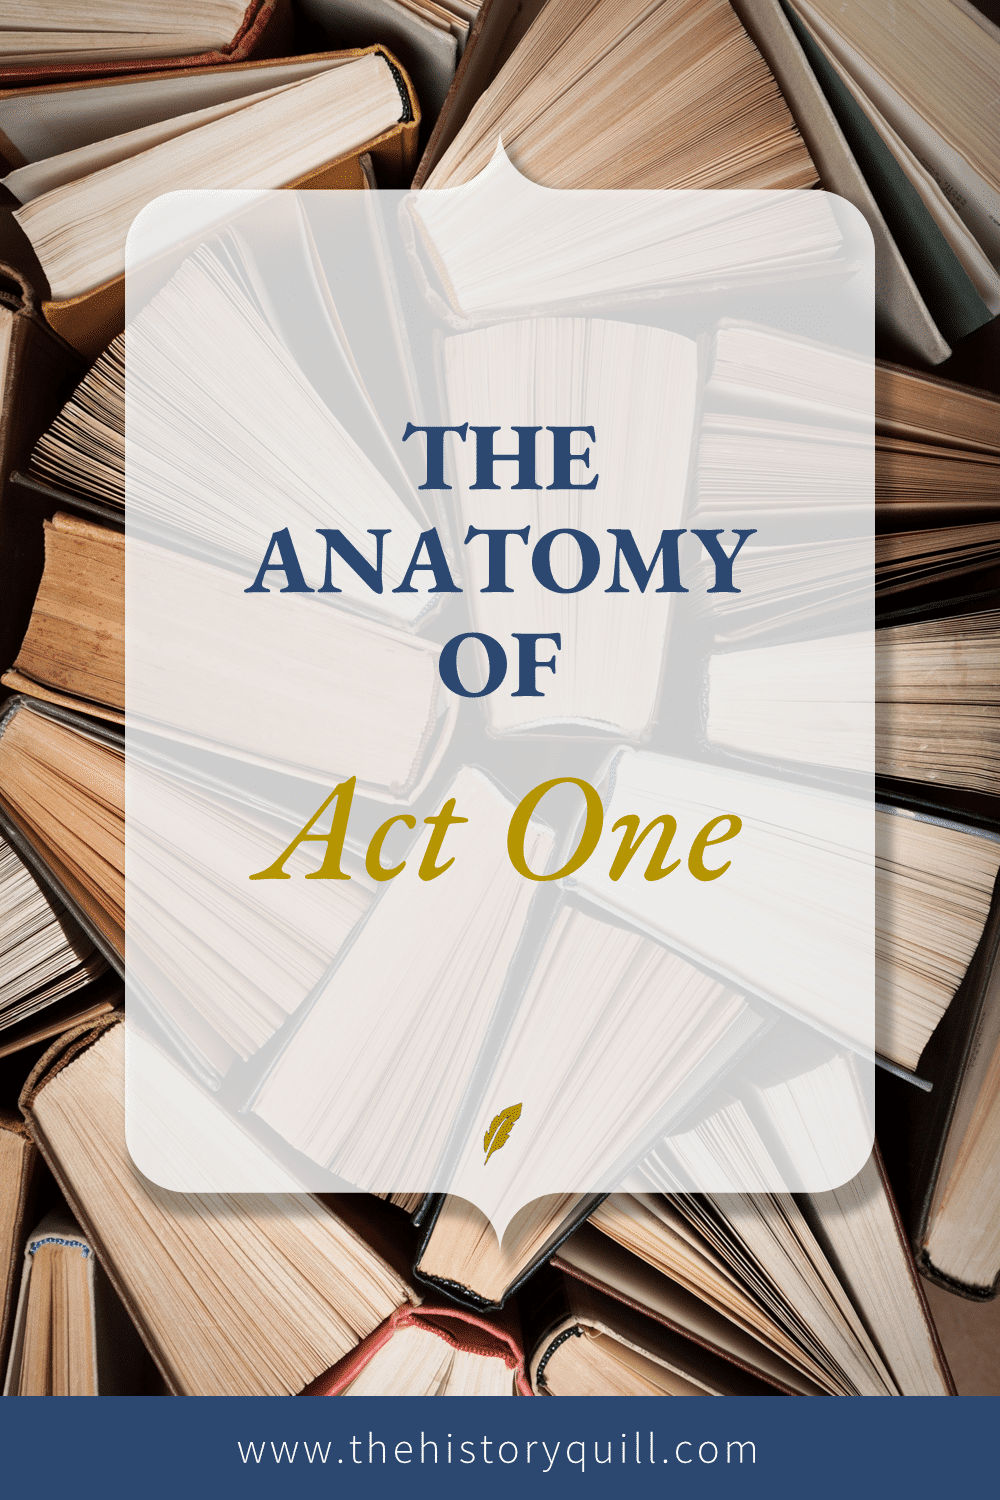 From The History Quill blog, the anatomy of Act One for your historical fiction writing